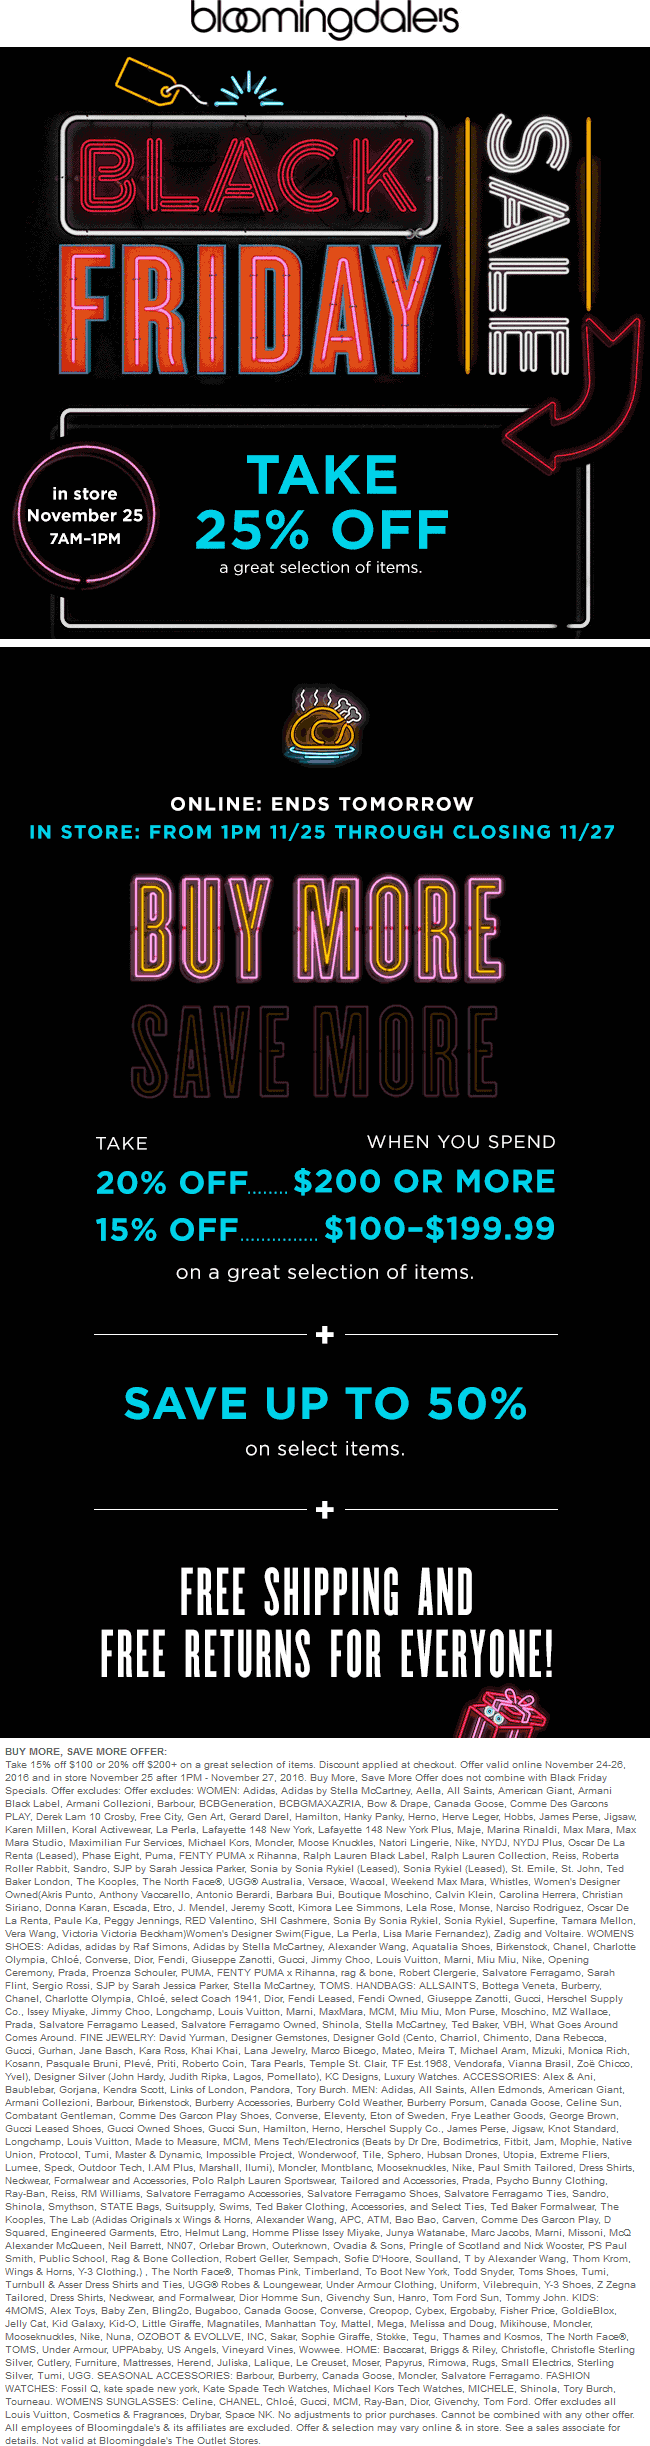 Bloomingdales.com Promo Coupon 25% off & more at Bloomingdales, ditto online